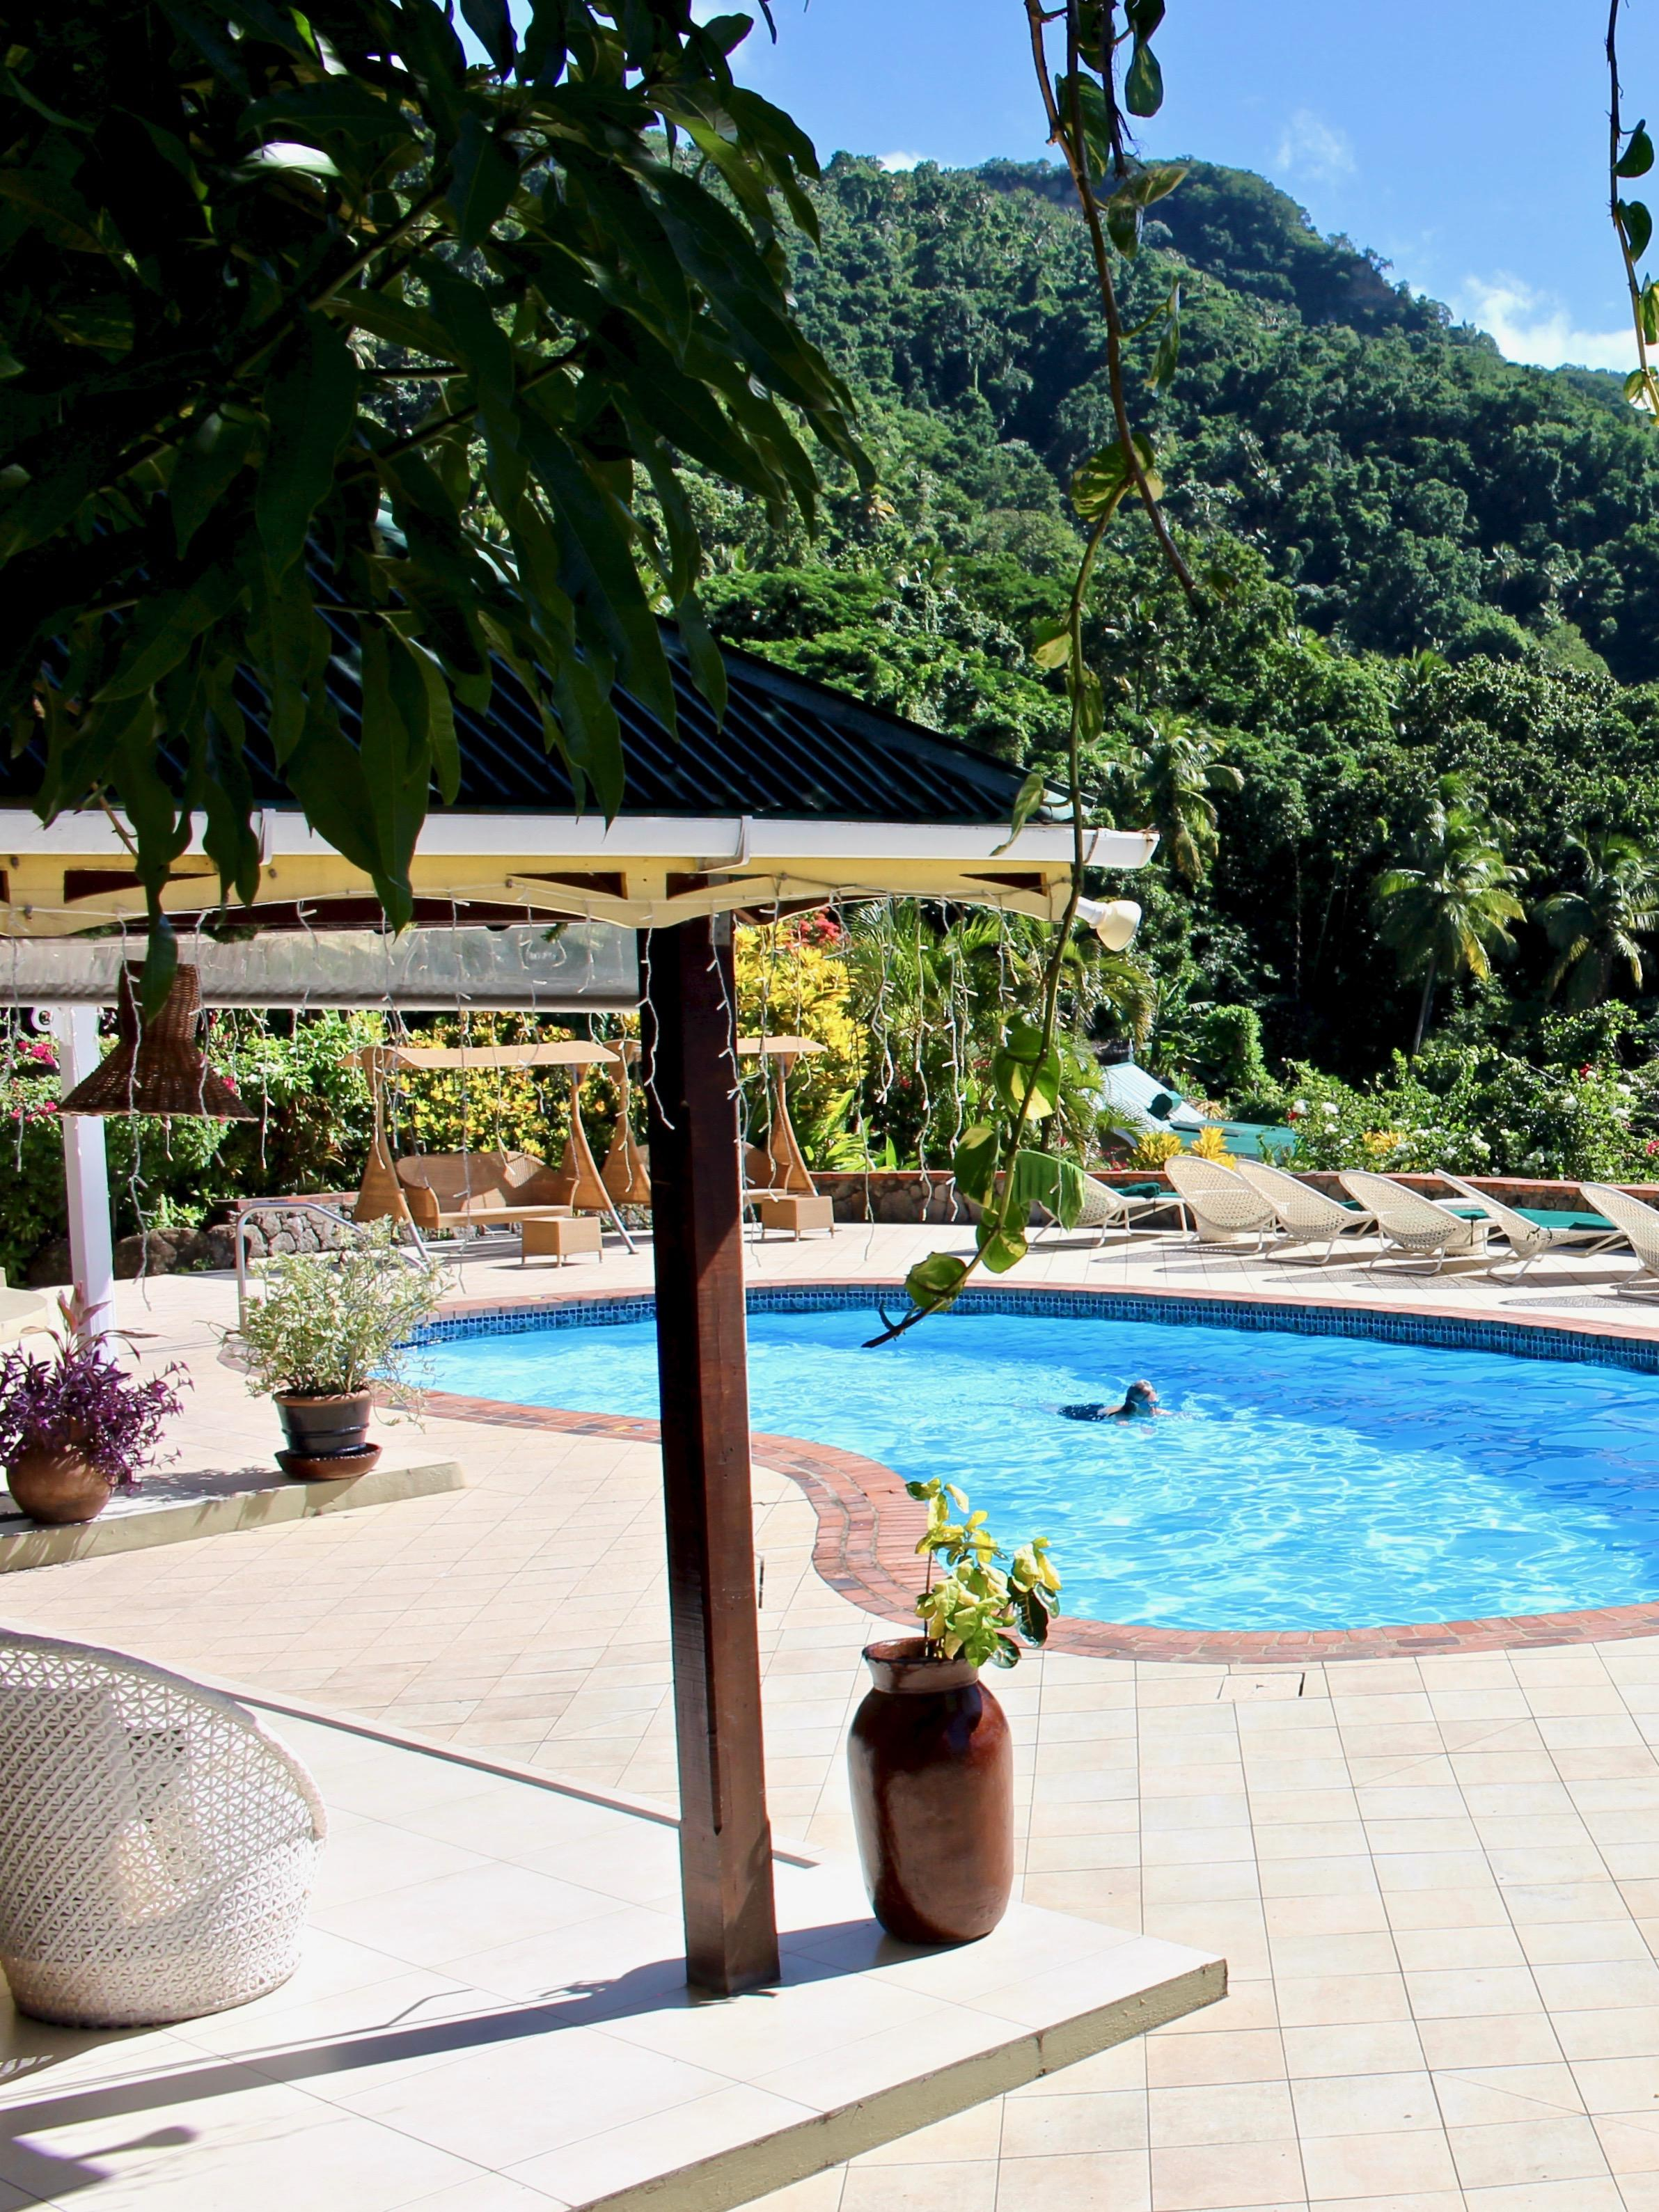 Stonefield Villa Resort, Soufriere, Saint Lucia - Packaged Holidays